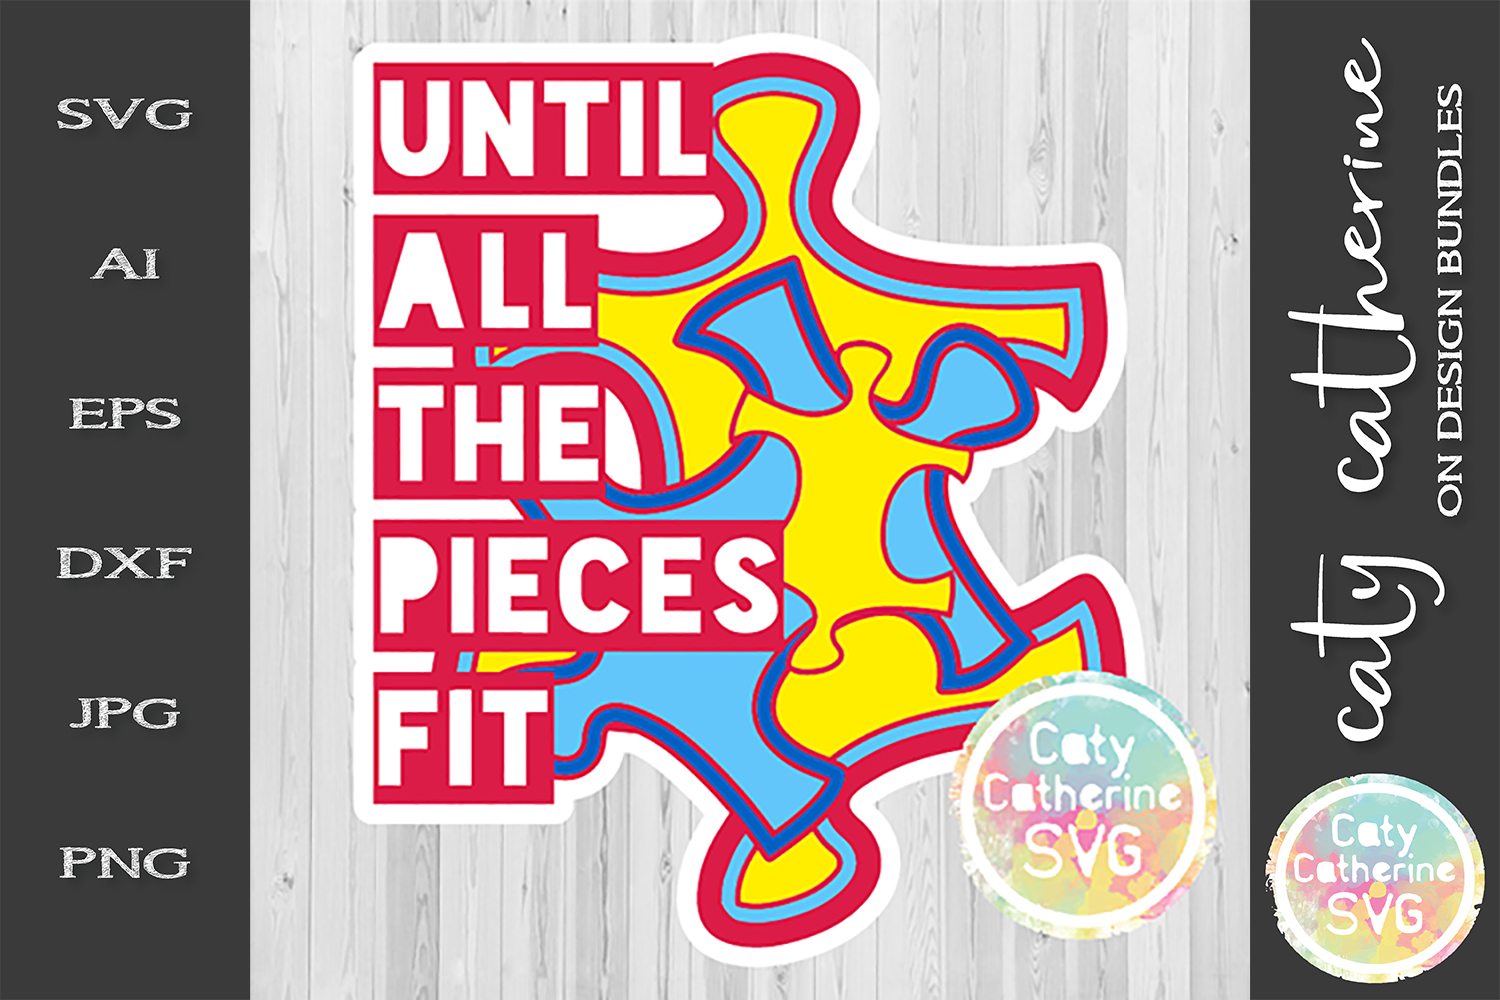 Until All The Pieces Fit SVG Autism Awareness Cut File example image 2